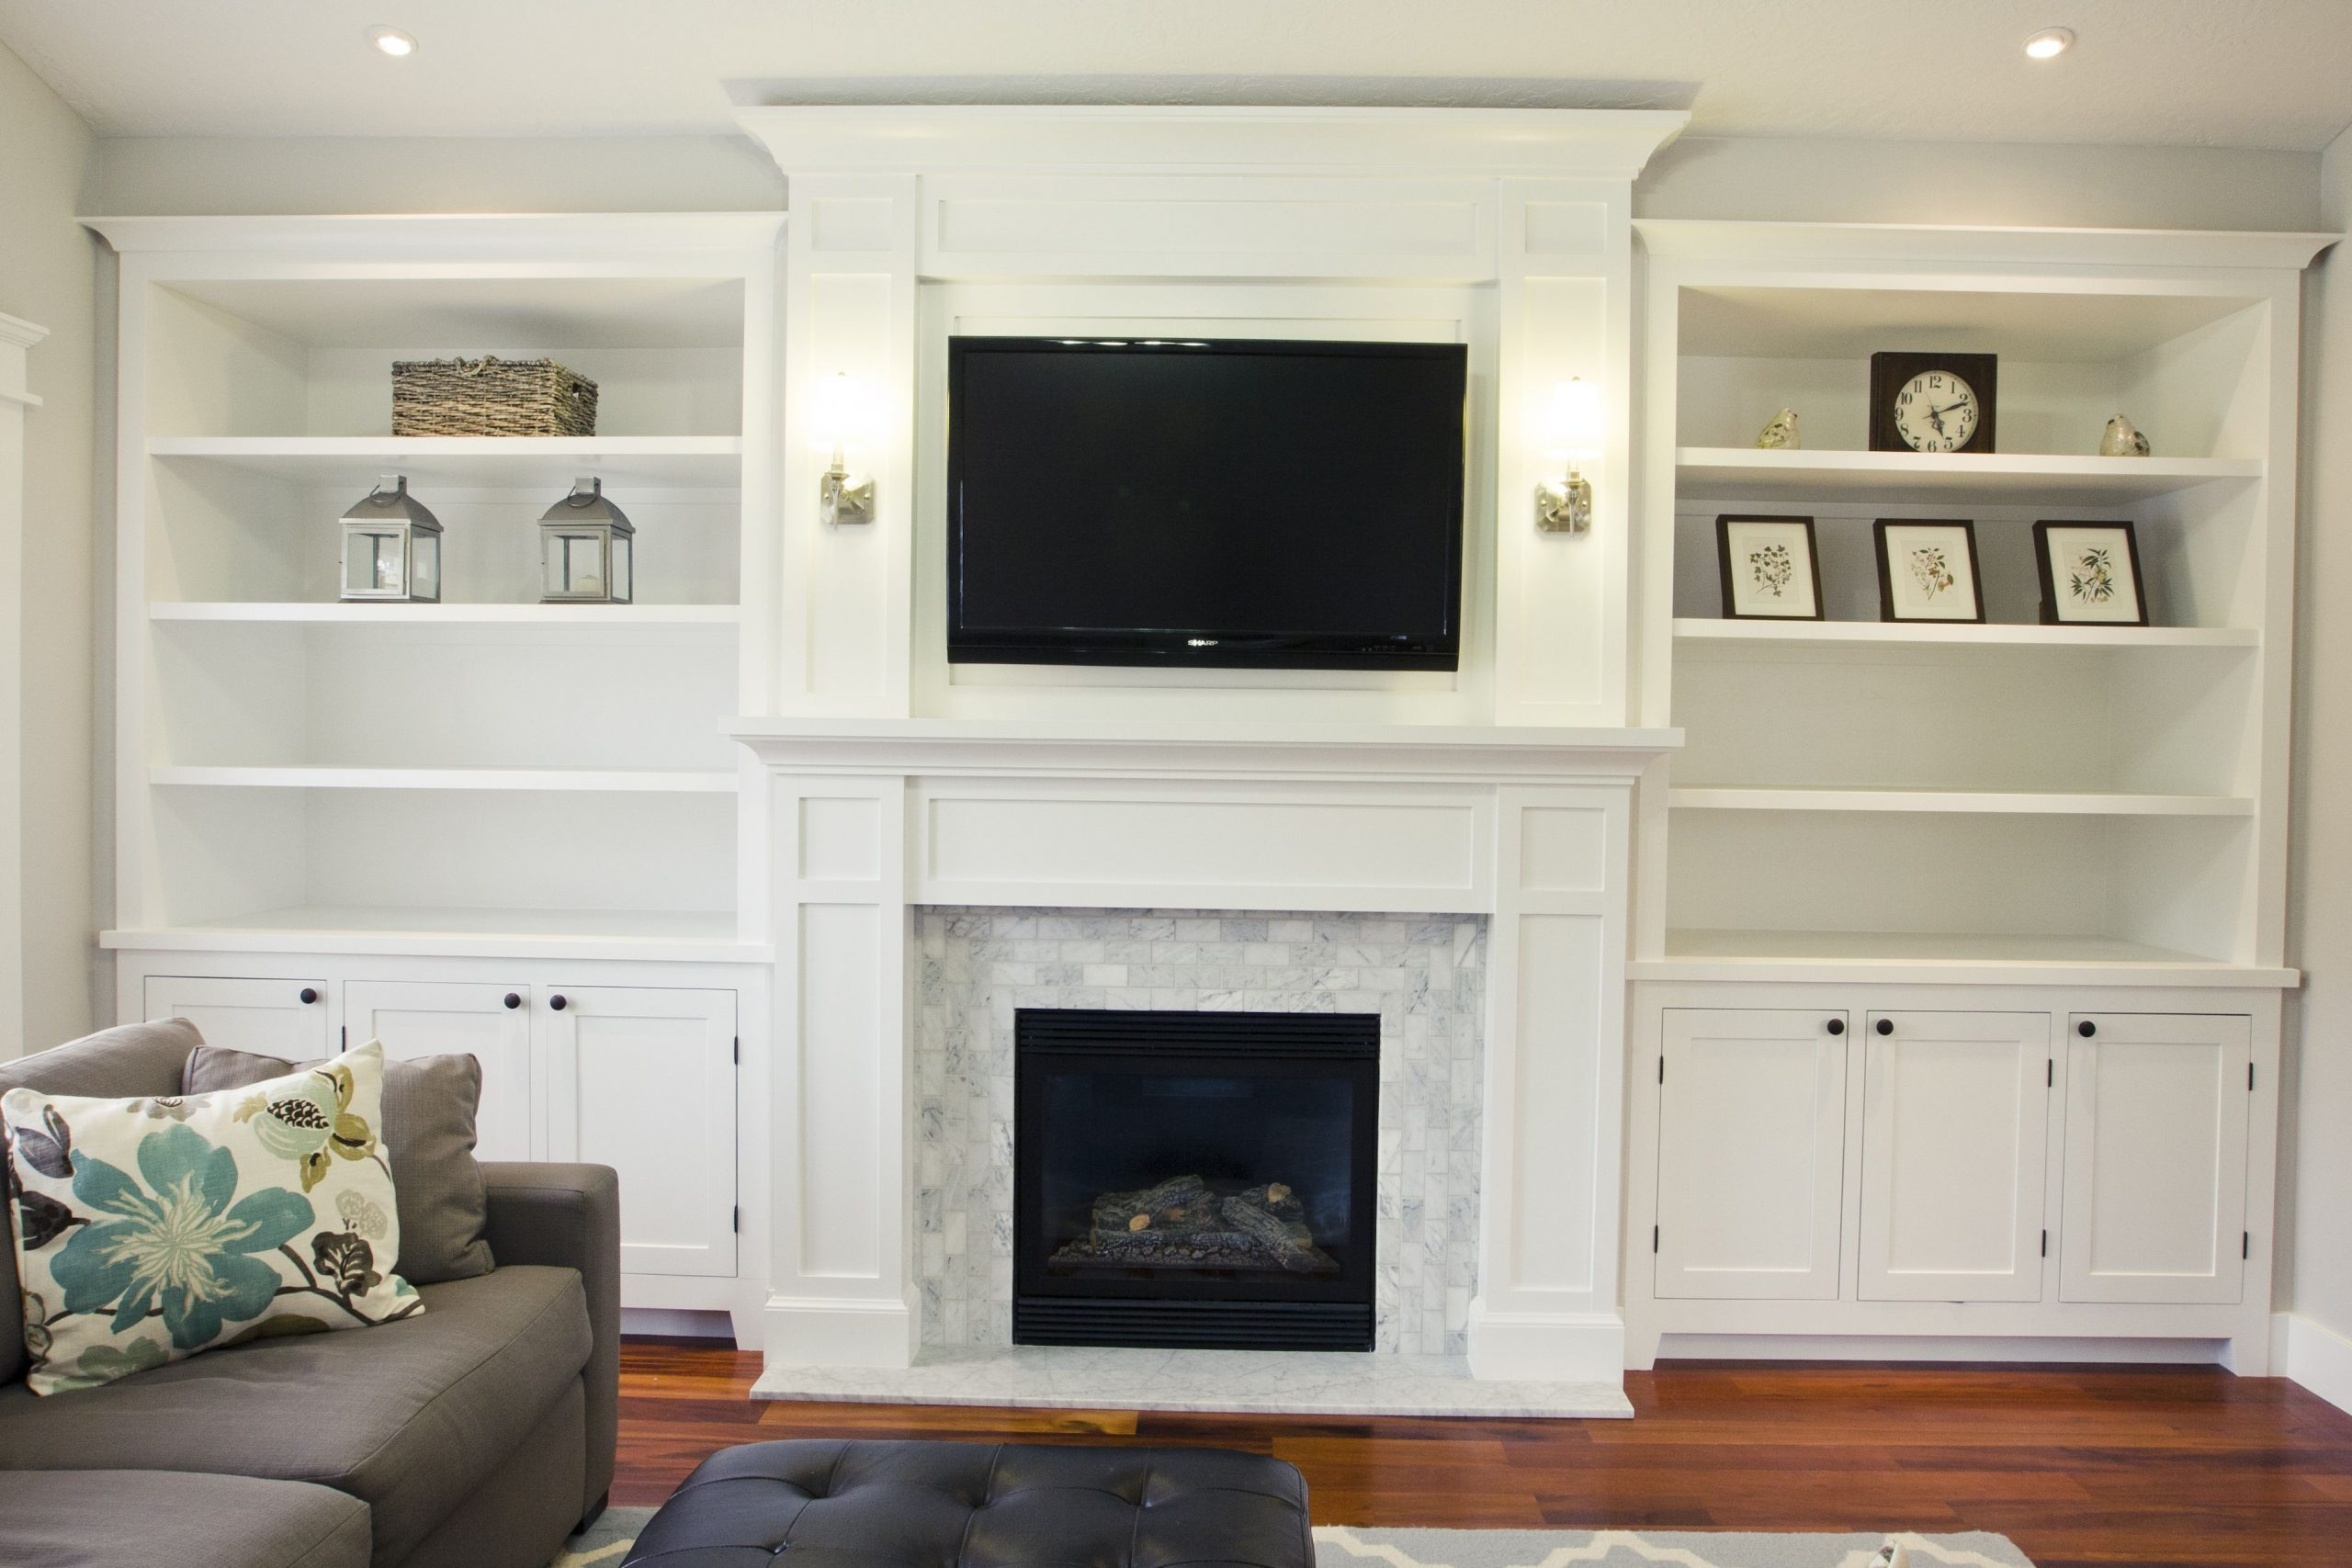 Great Built Ins Around Mantel Move Tv To Right Diy in dimensions 3796 X 2531